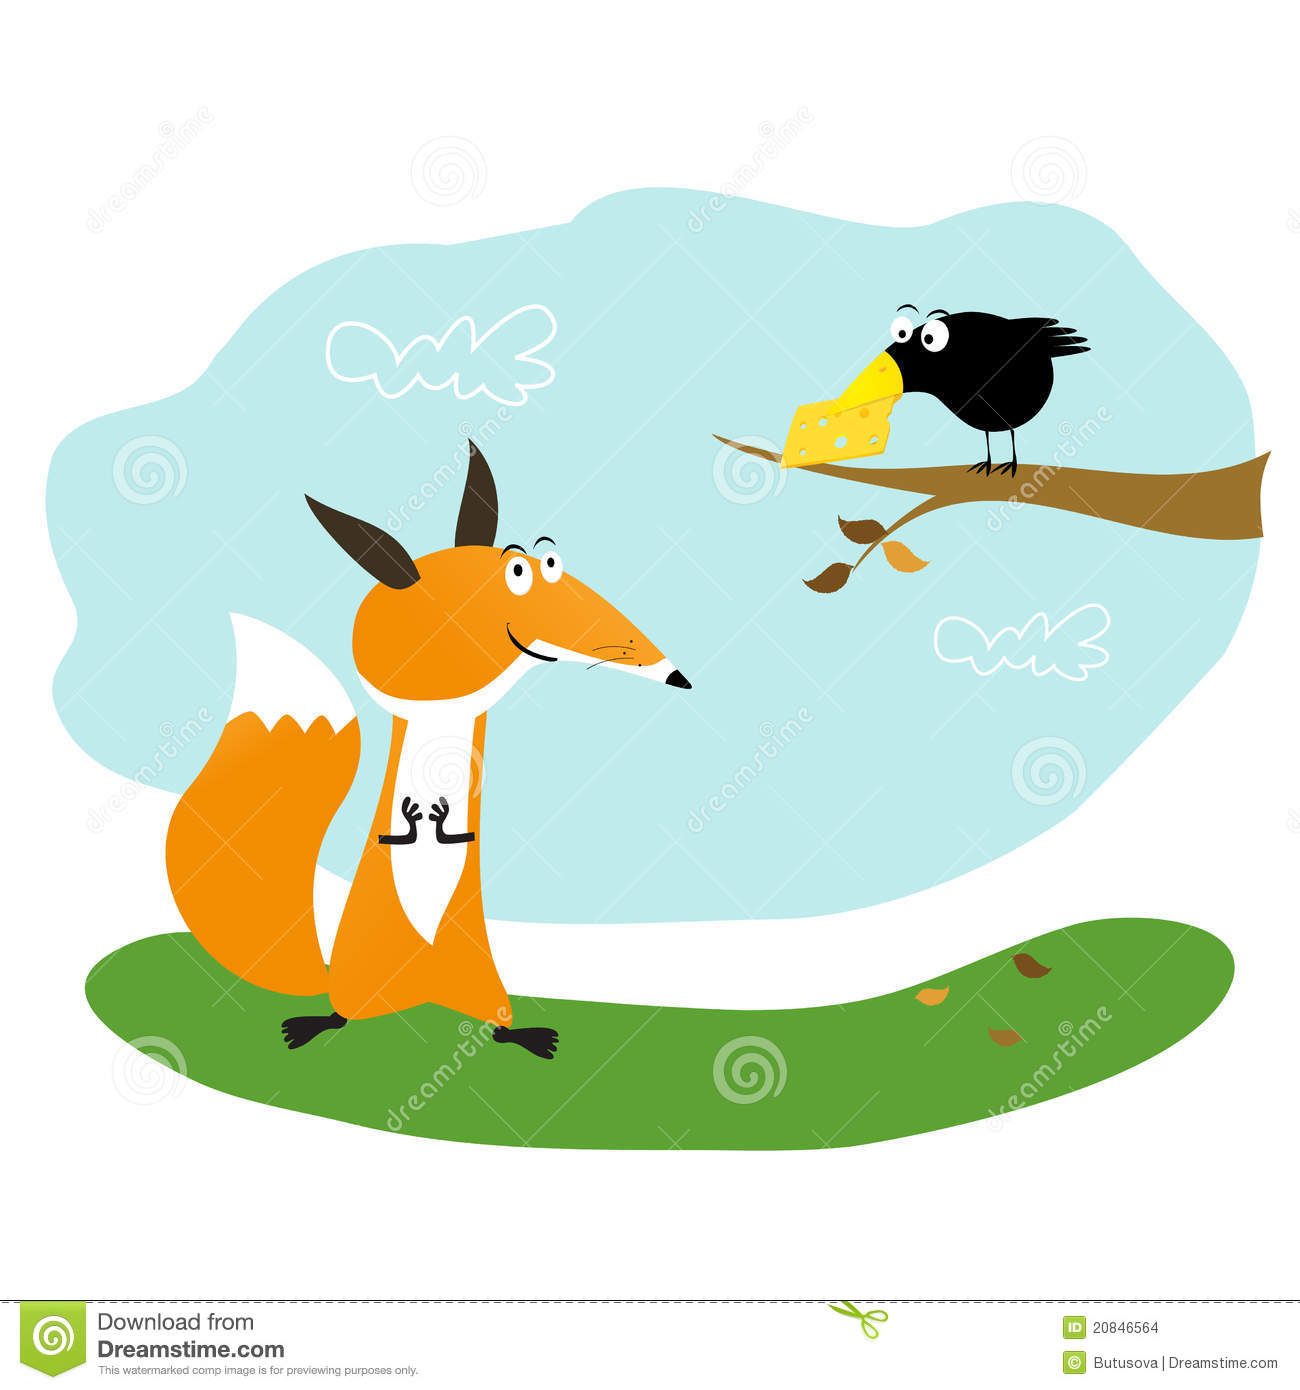 Fox and crow clipart.